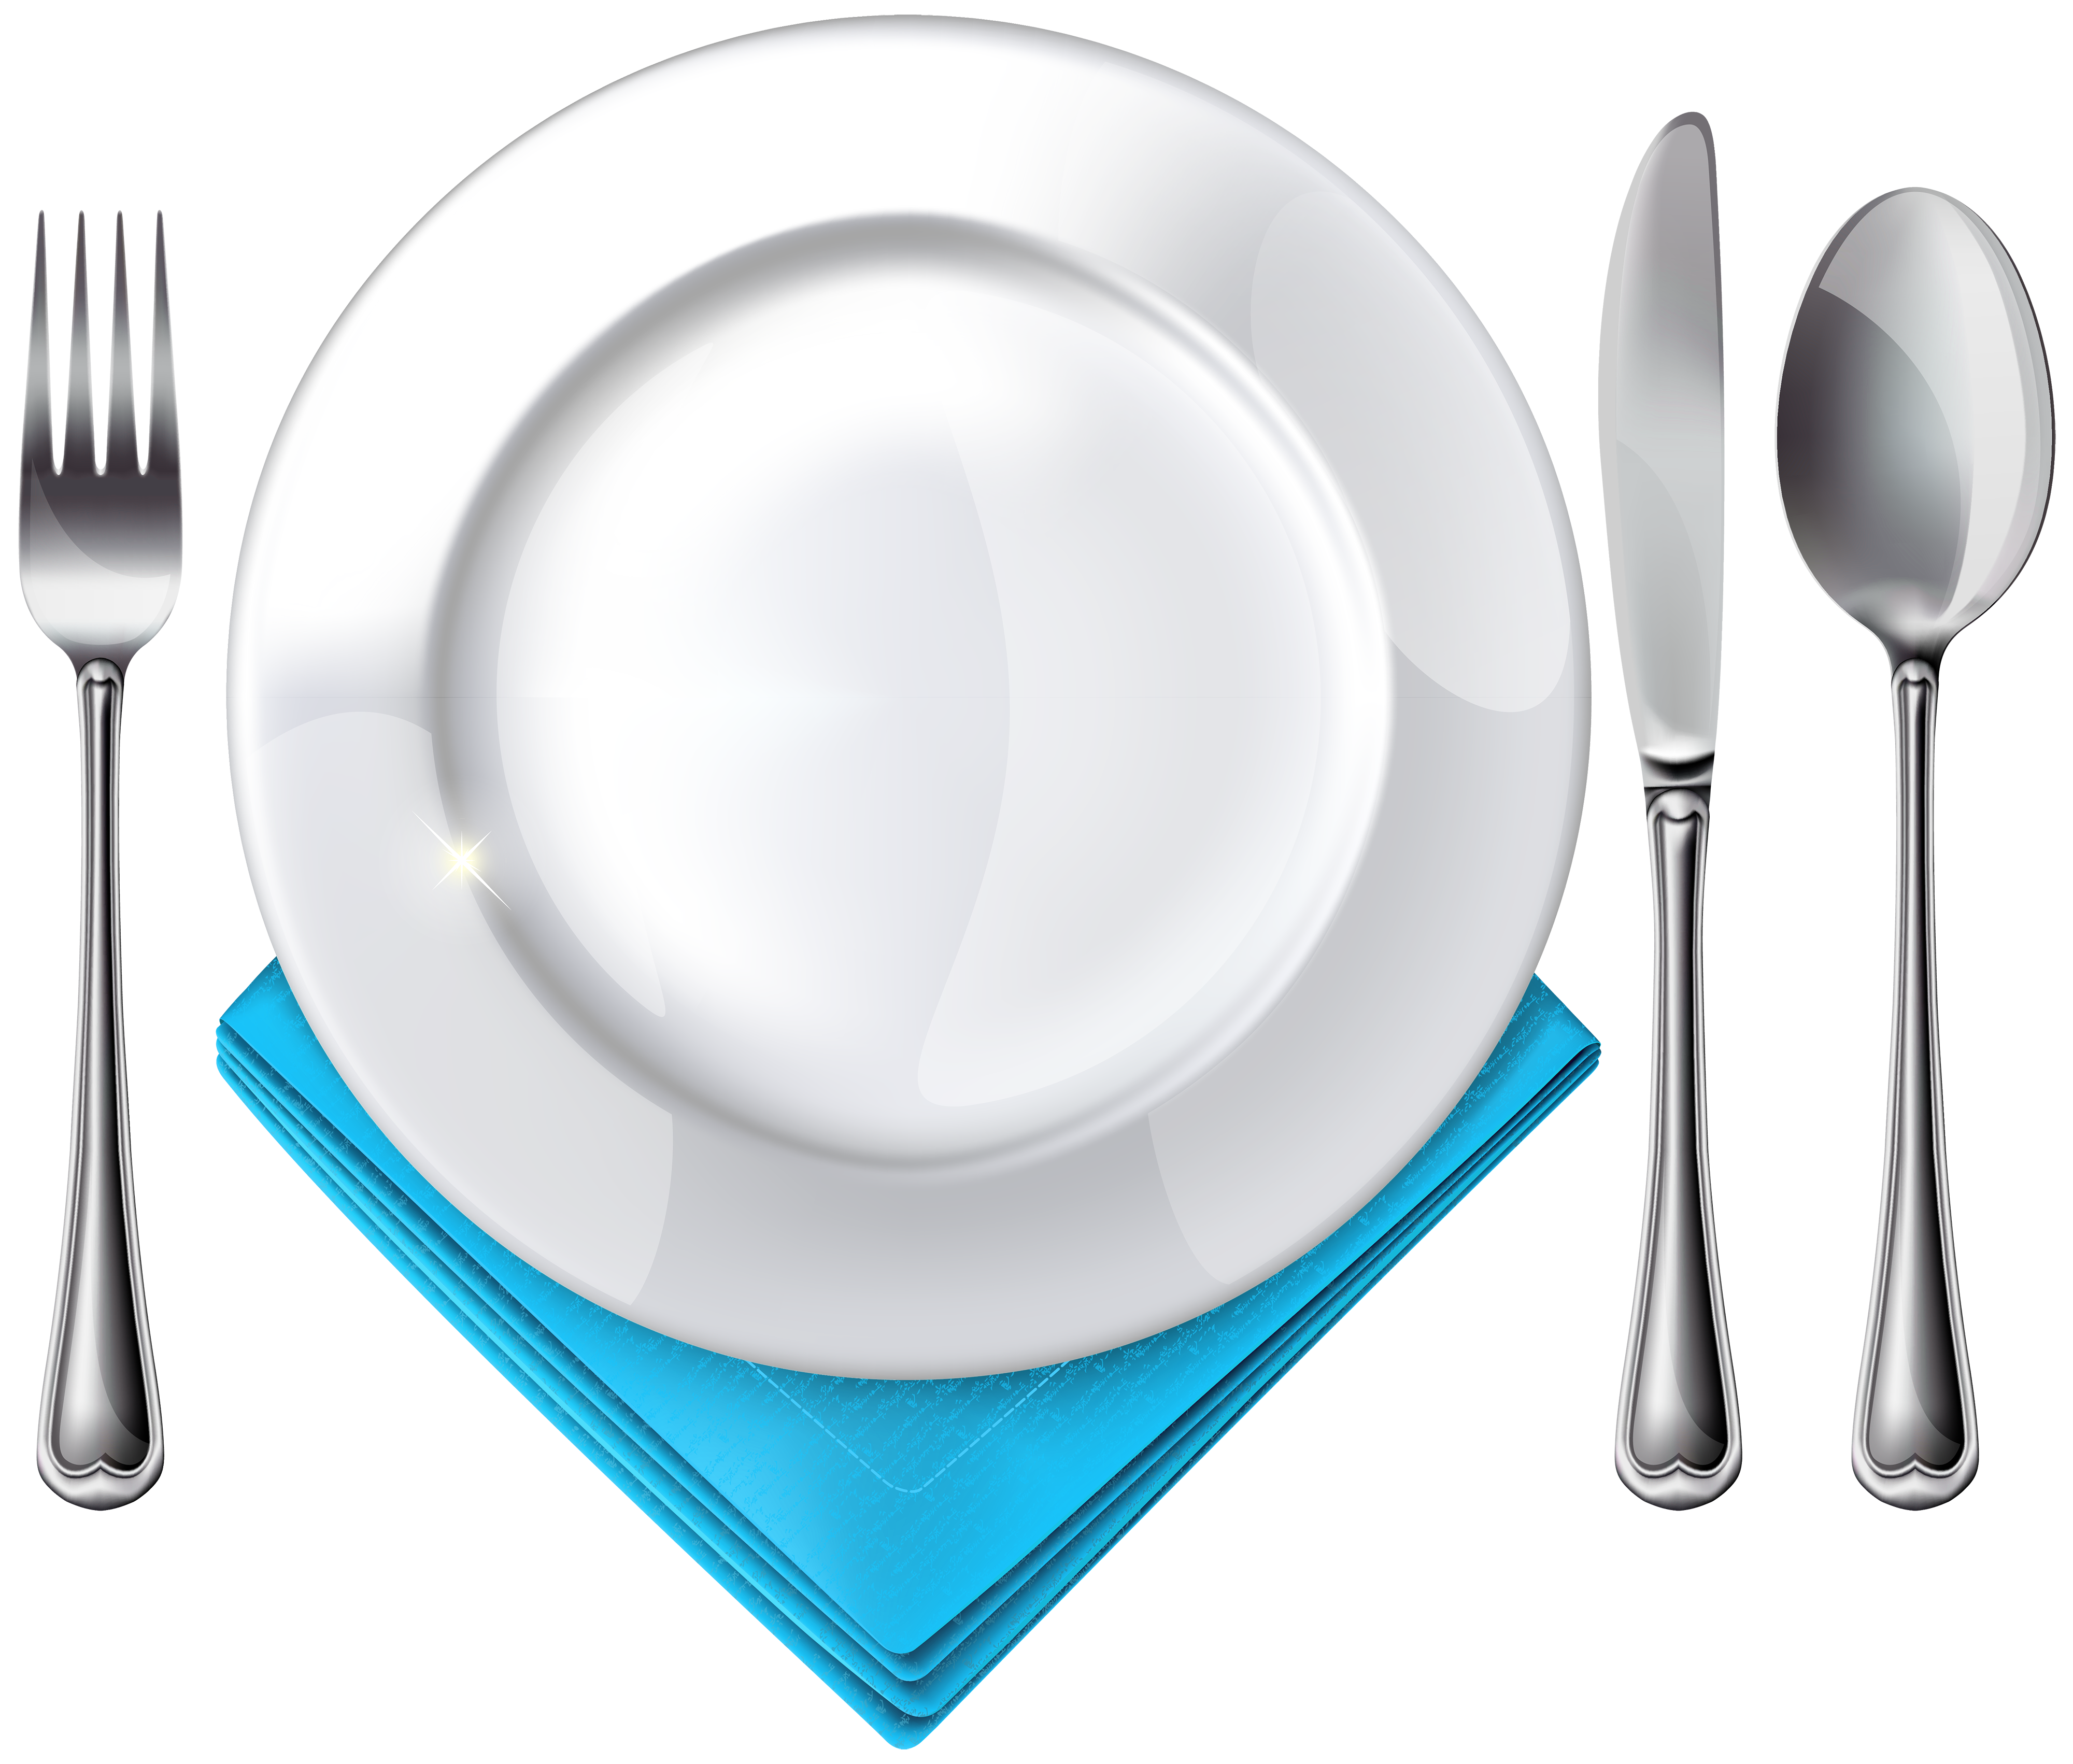 Plate spoon knife fork. Napkin clipart white fabric